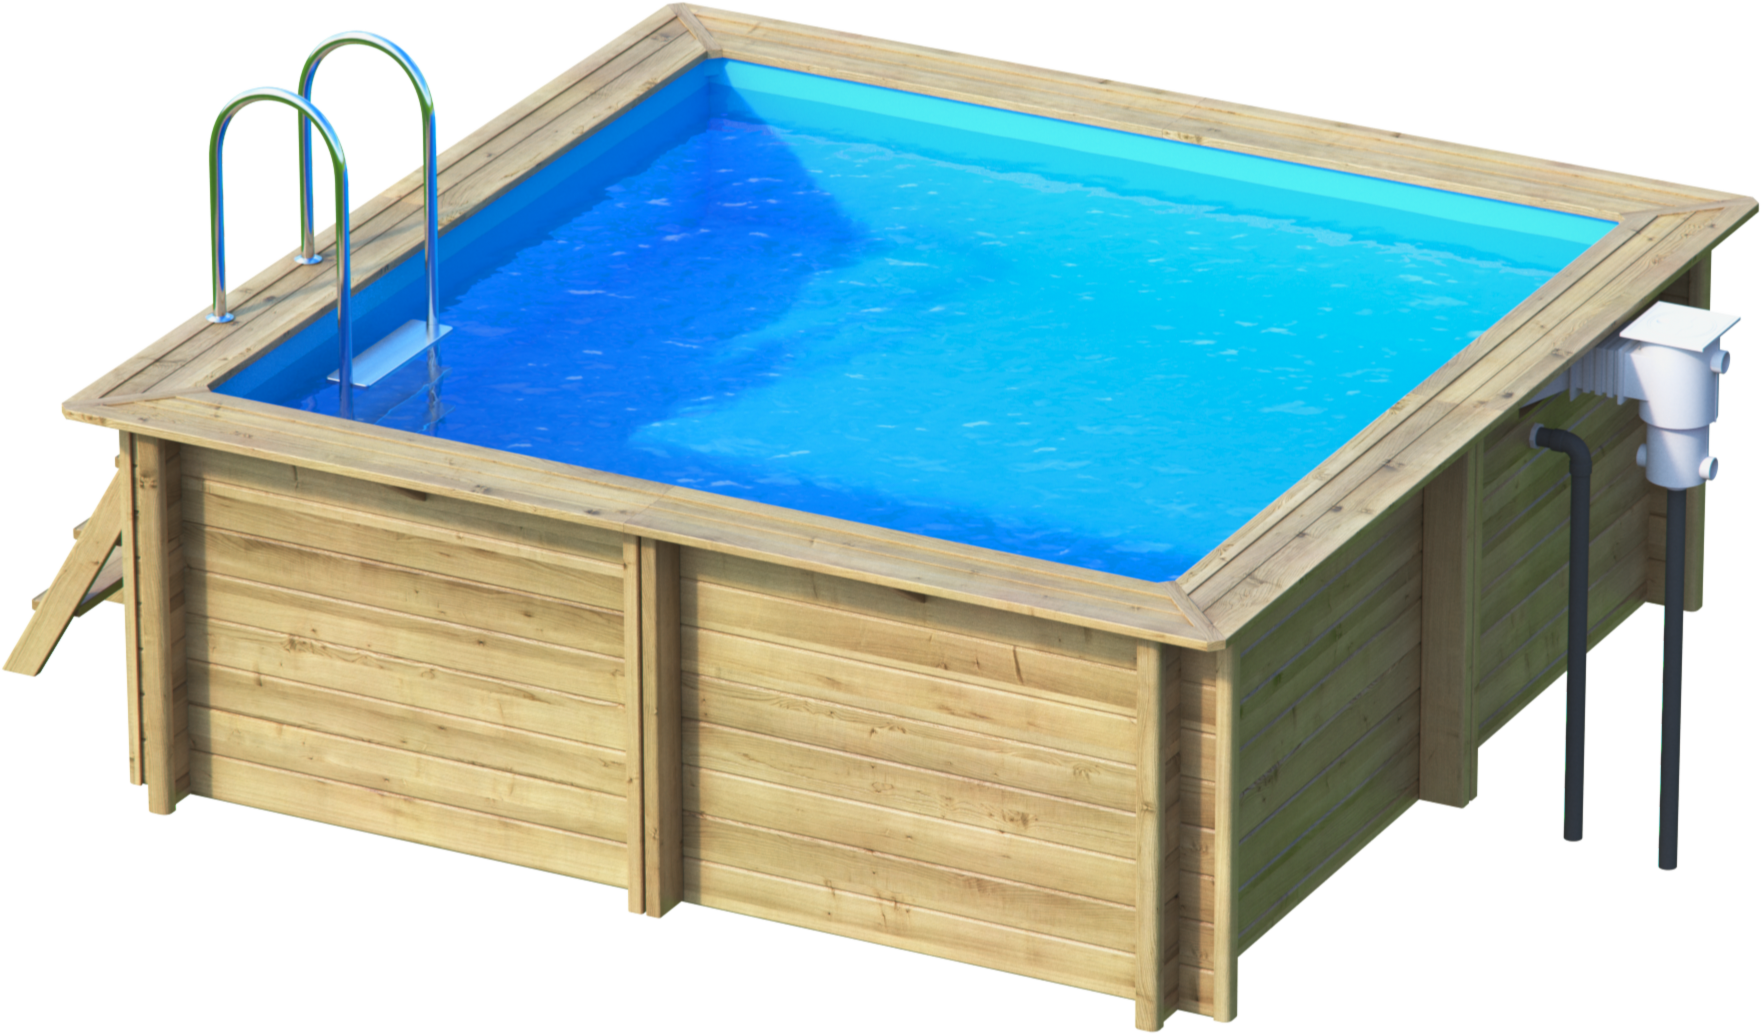 Weva carre 3x3 piscine bois weva par lpc for Piscine coque 3x3